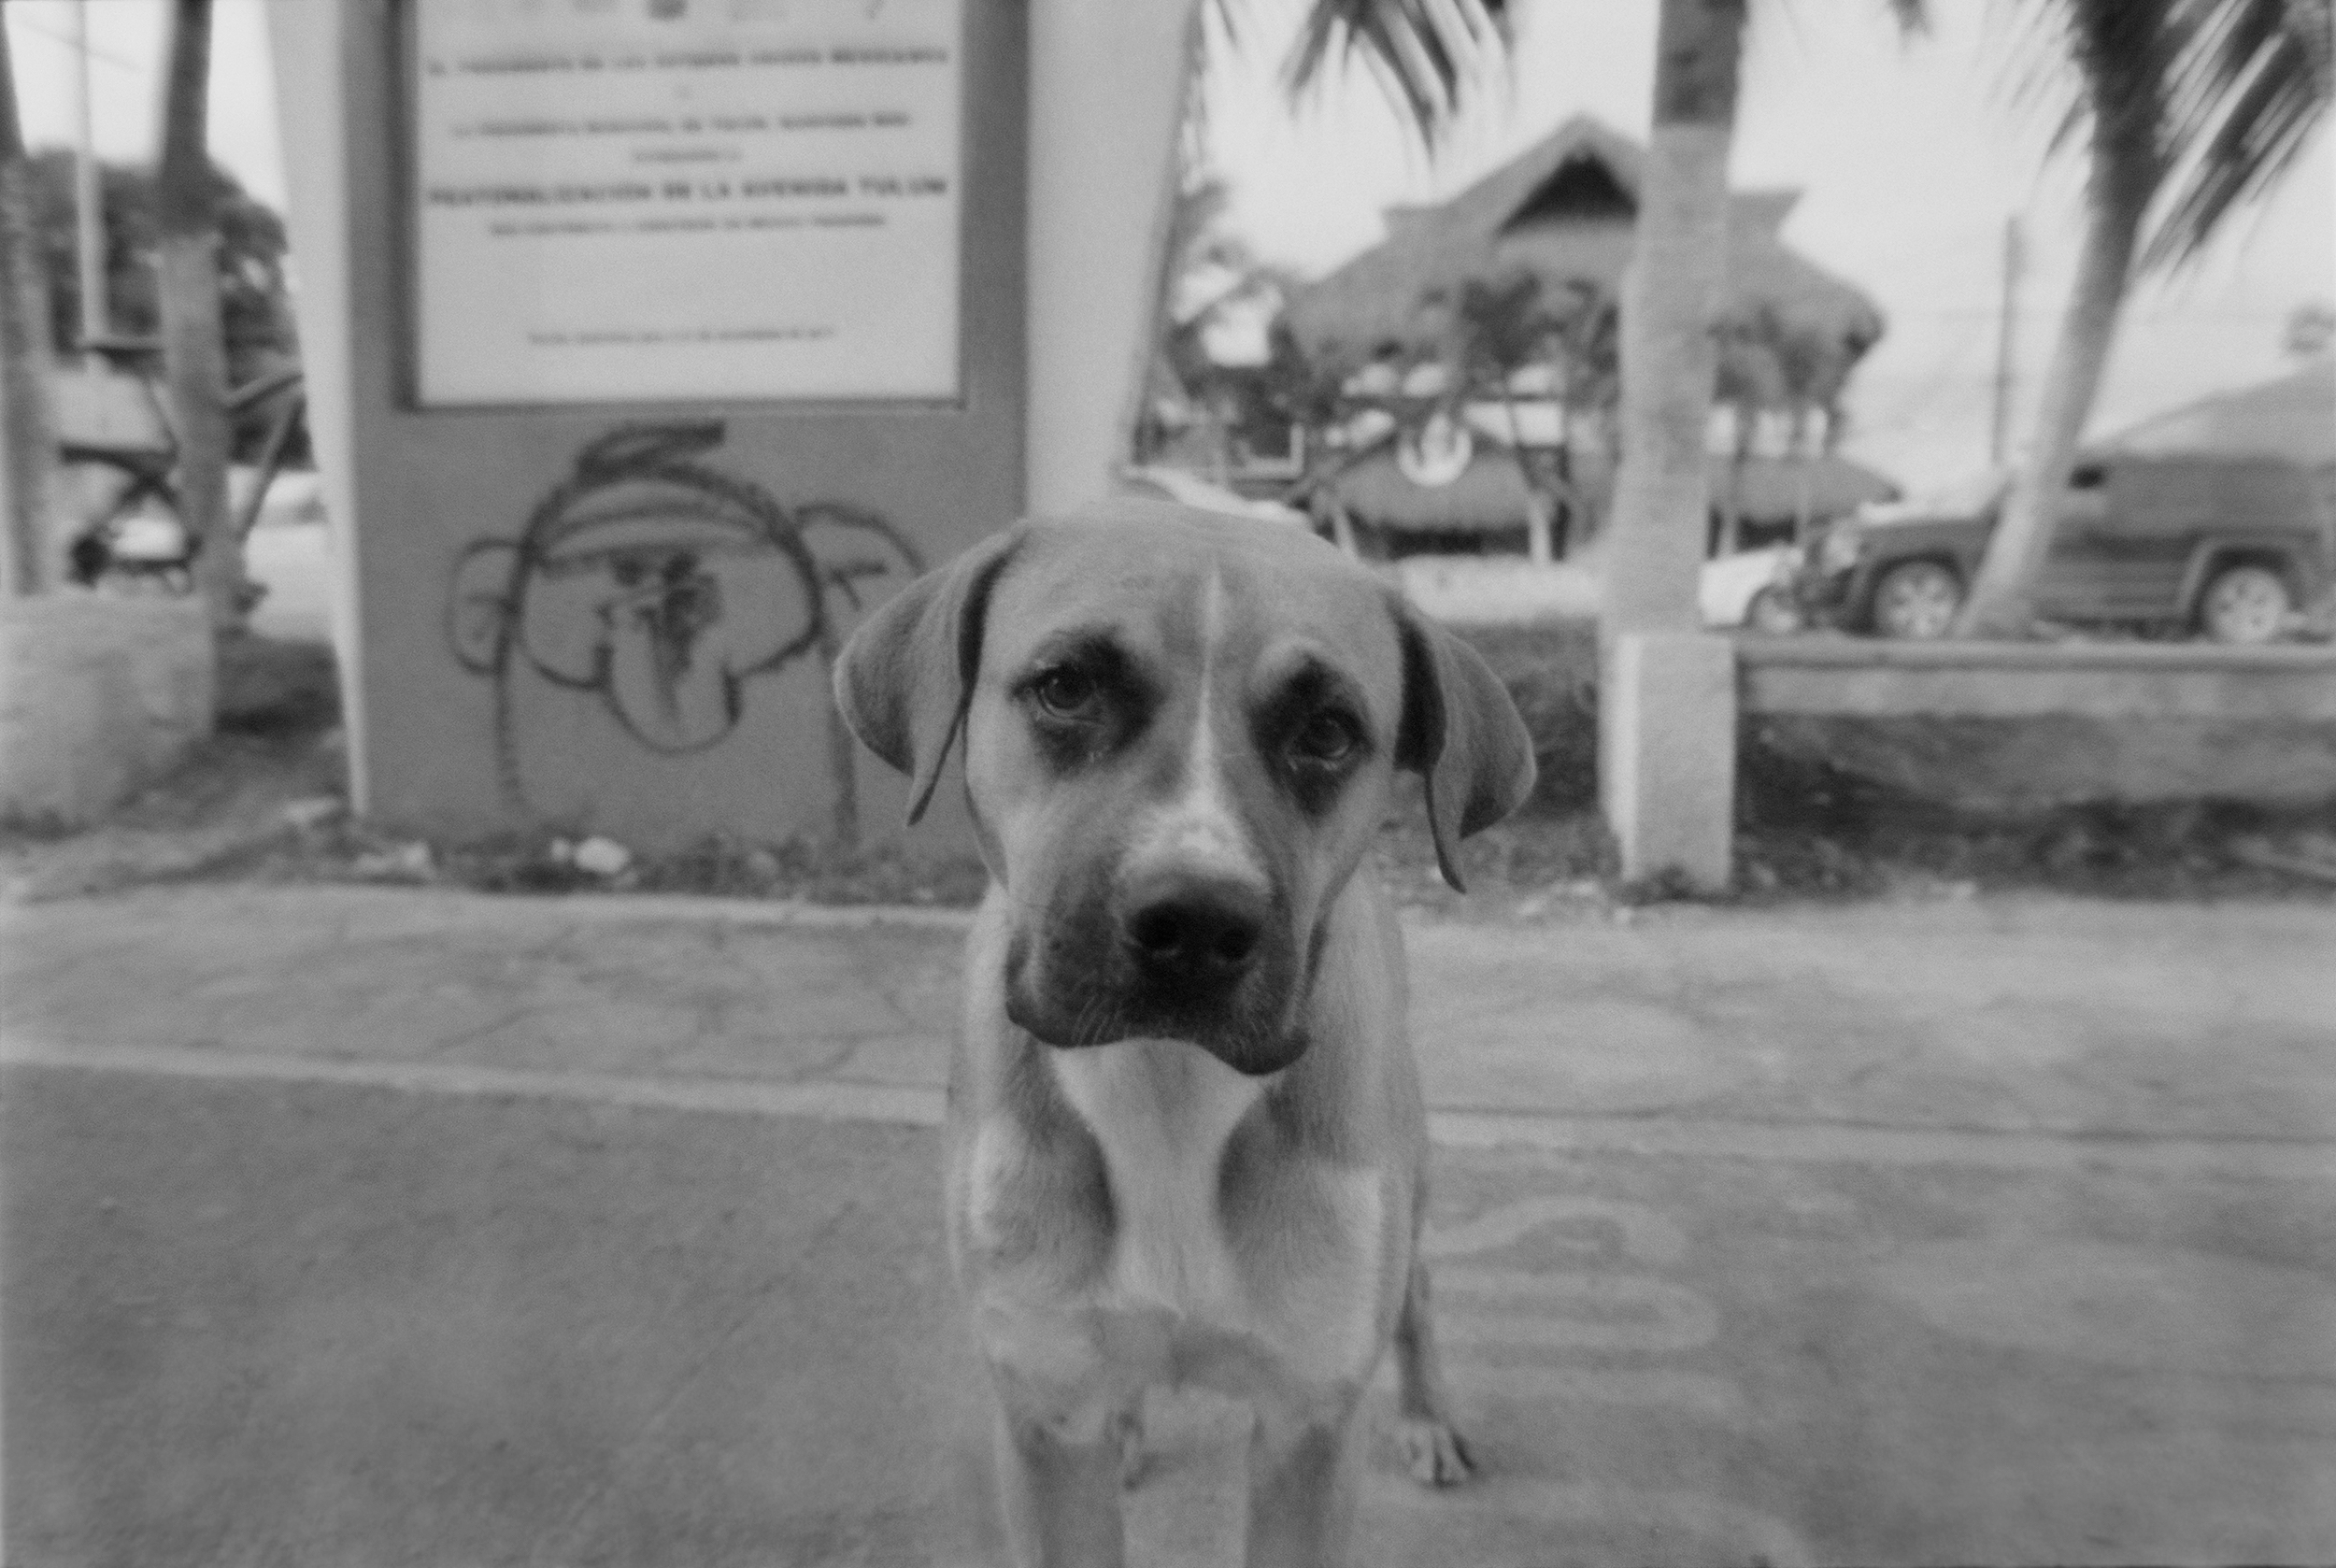 One of the many strays of Tulum